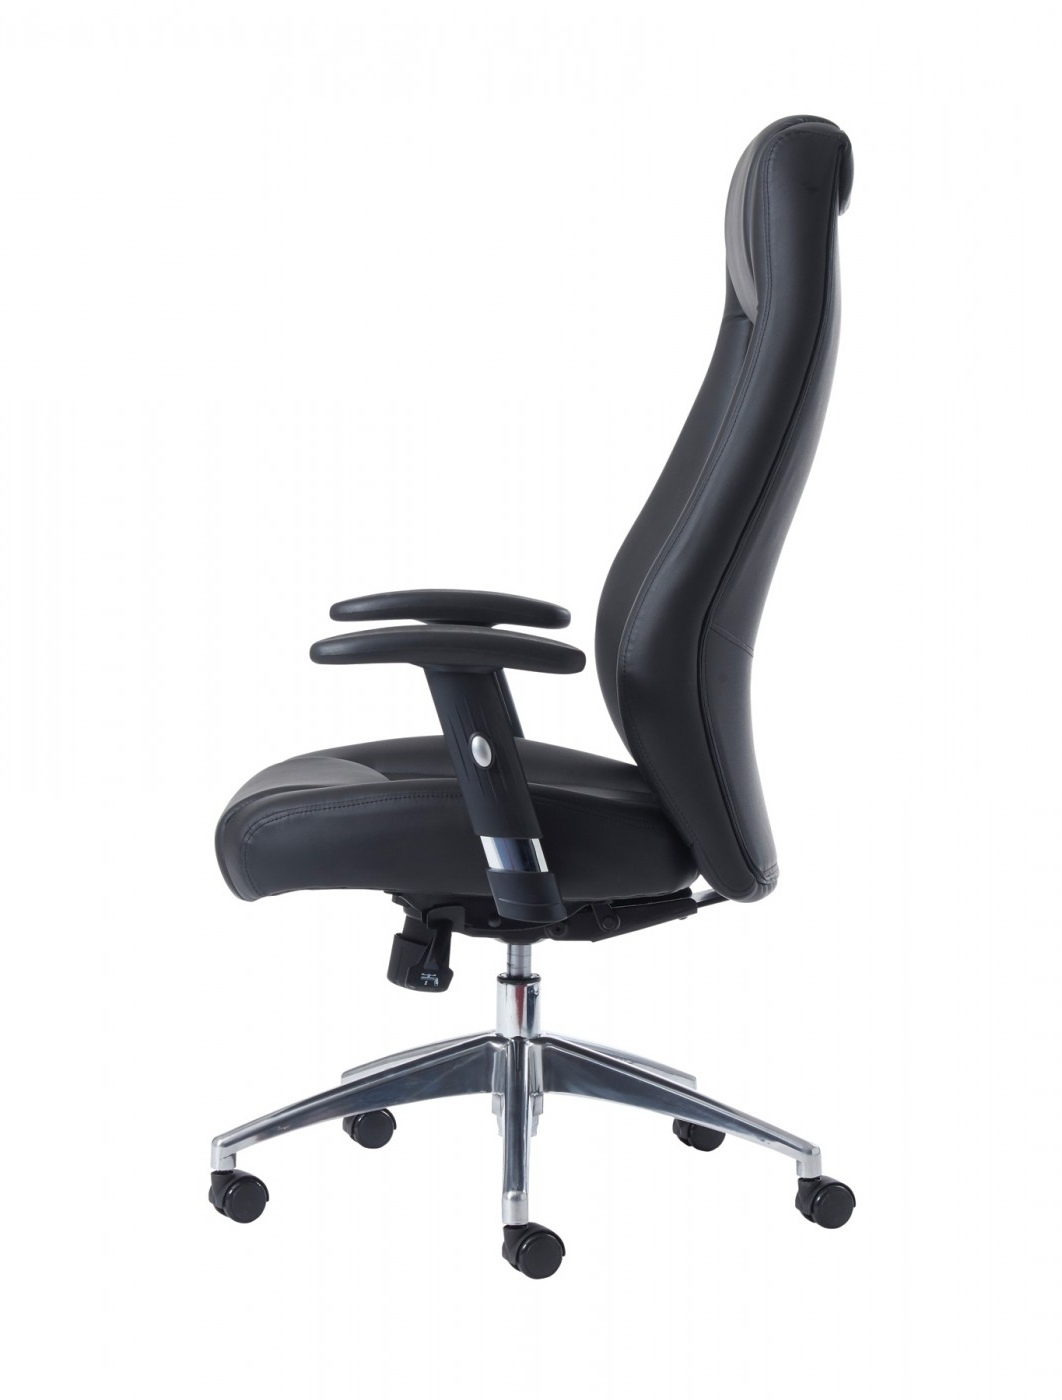 121 Office Pertaining To Black Leather Faced Executive Office Chairs (View 5 of 20)